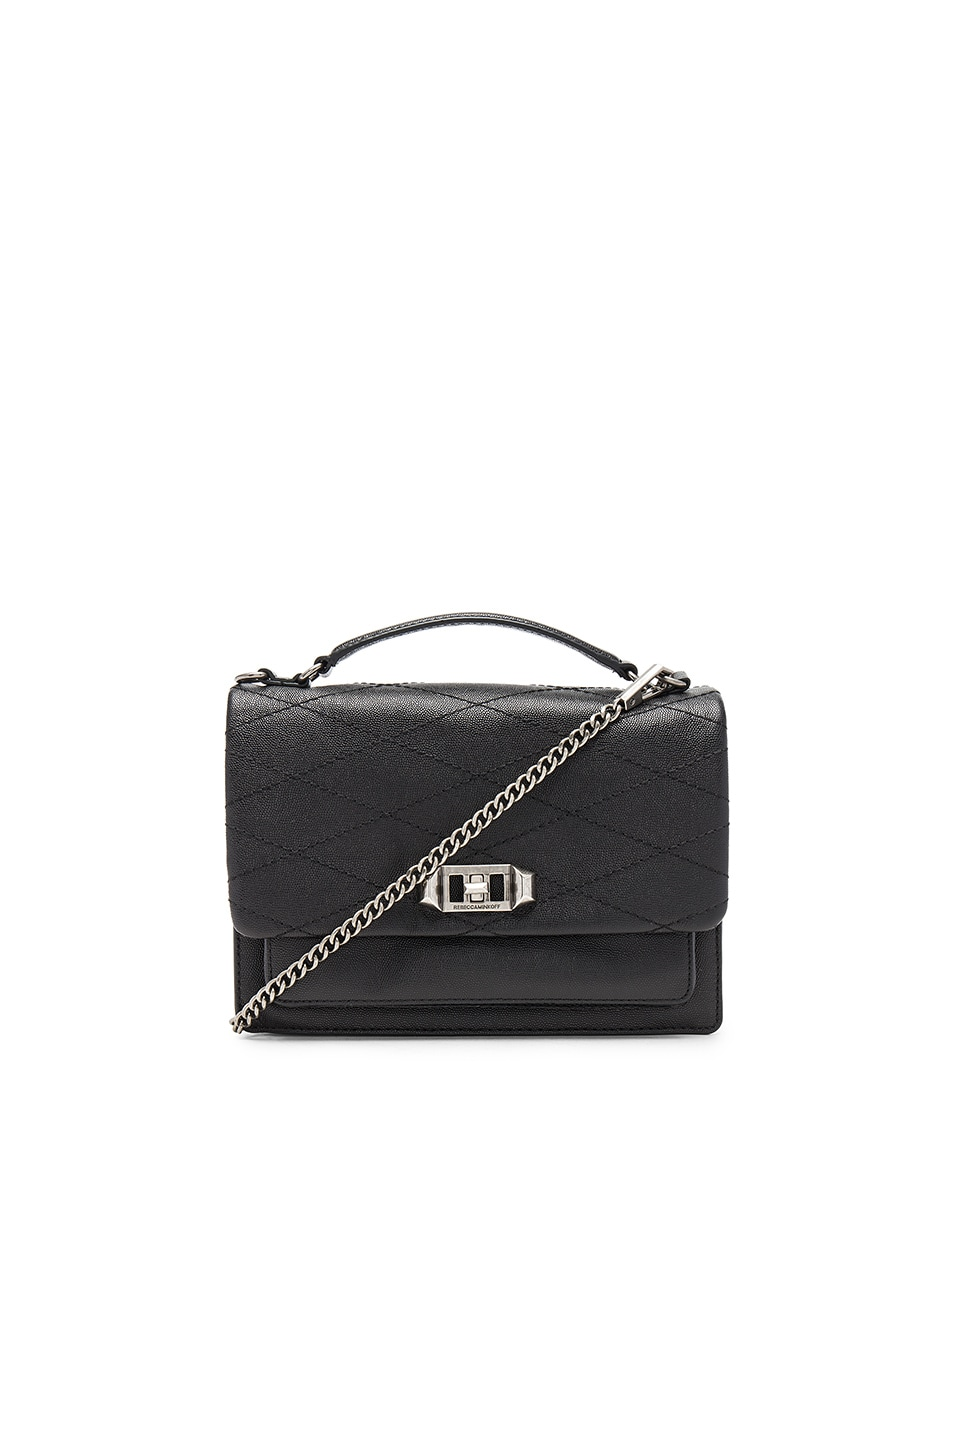 Rebecca Minkoff Je Taime Medium Crossbody in Black